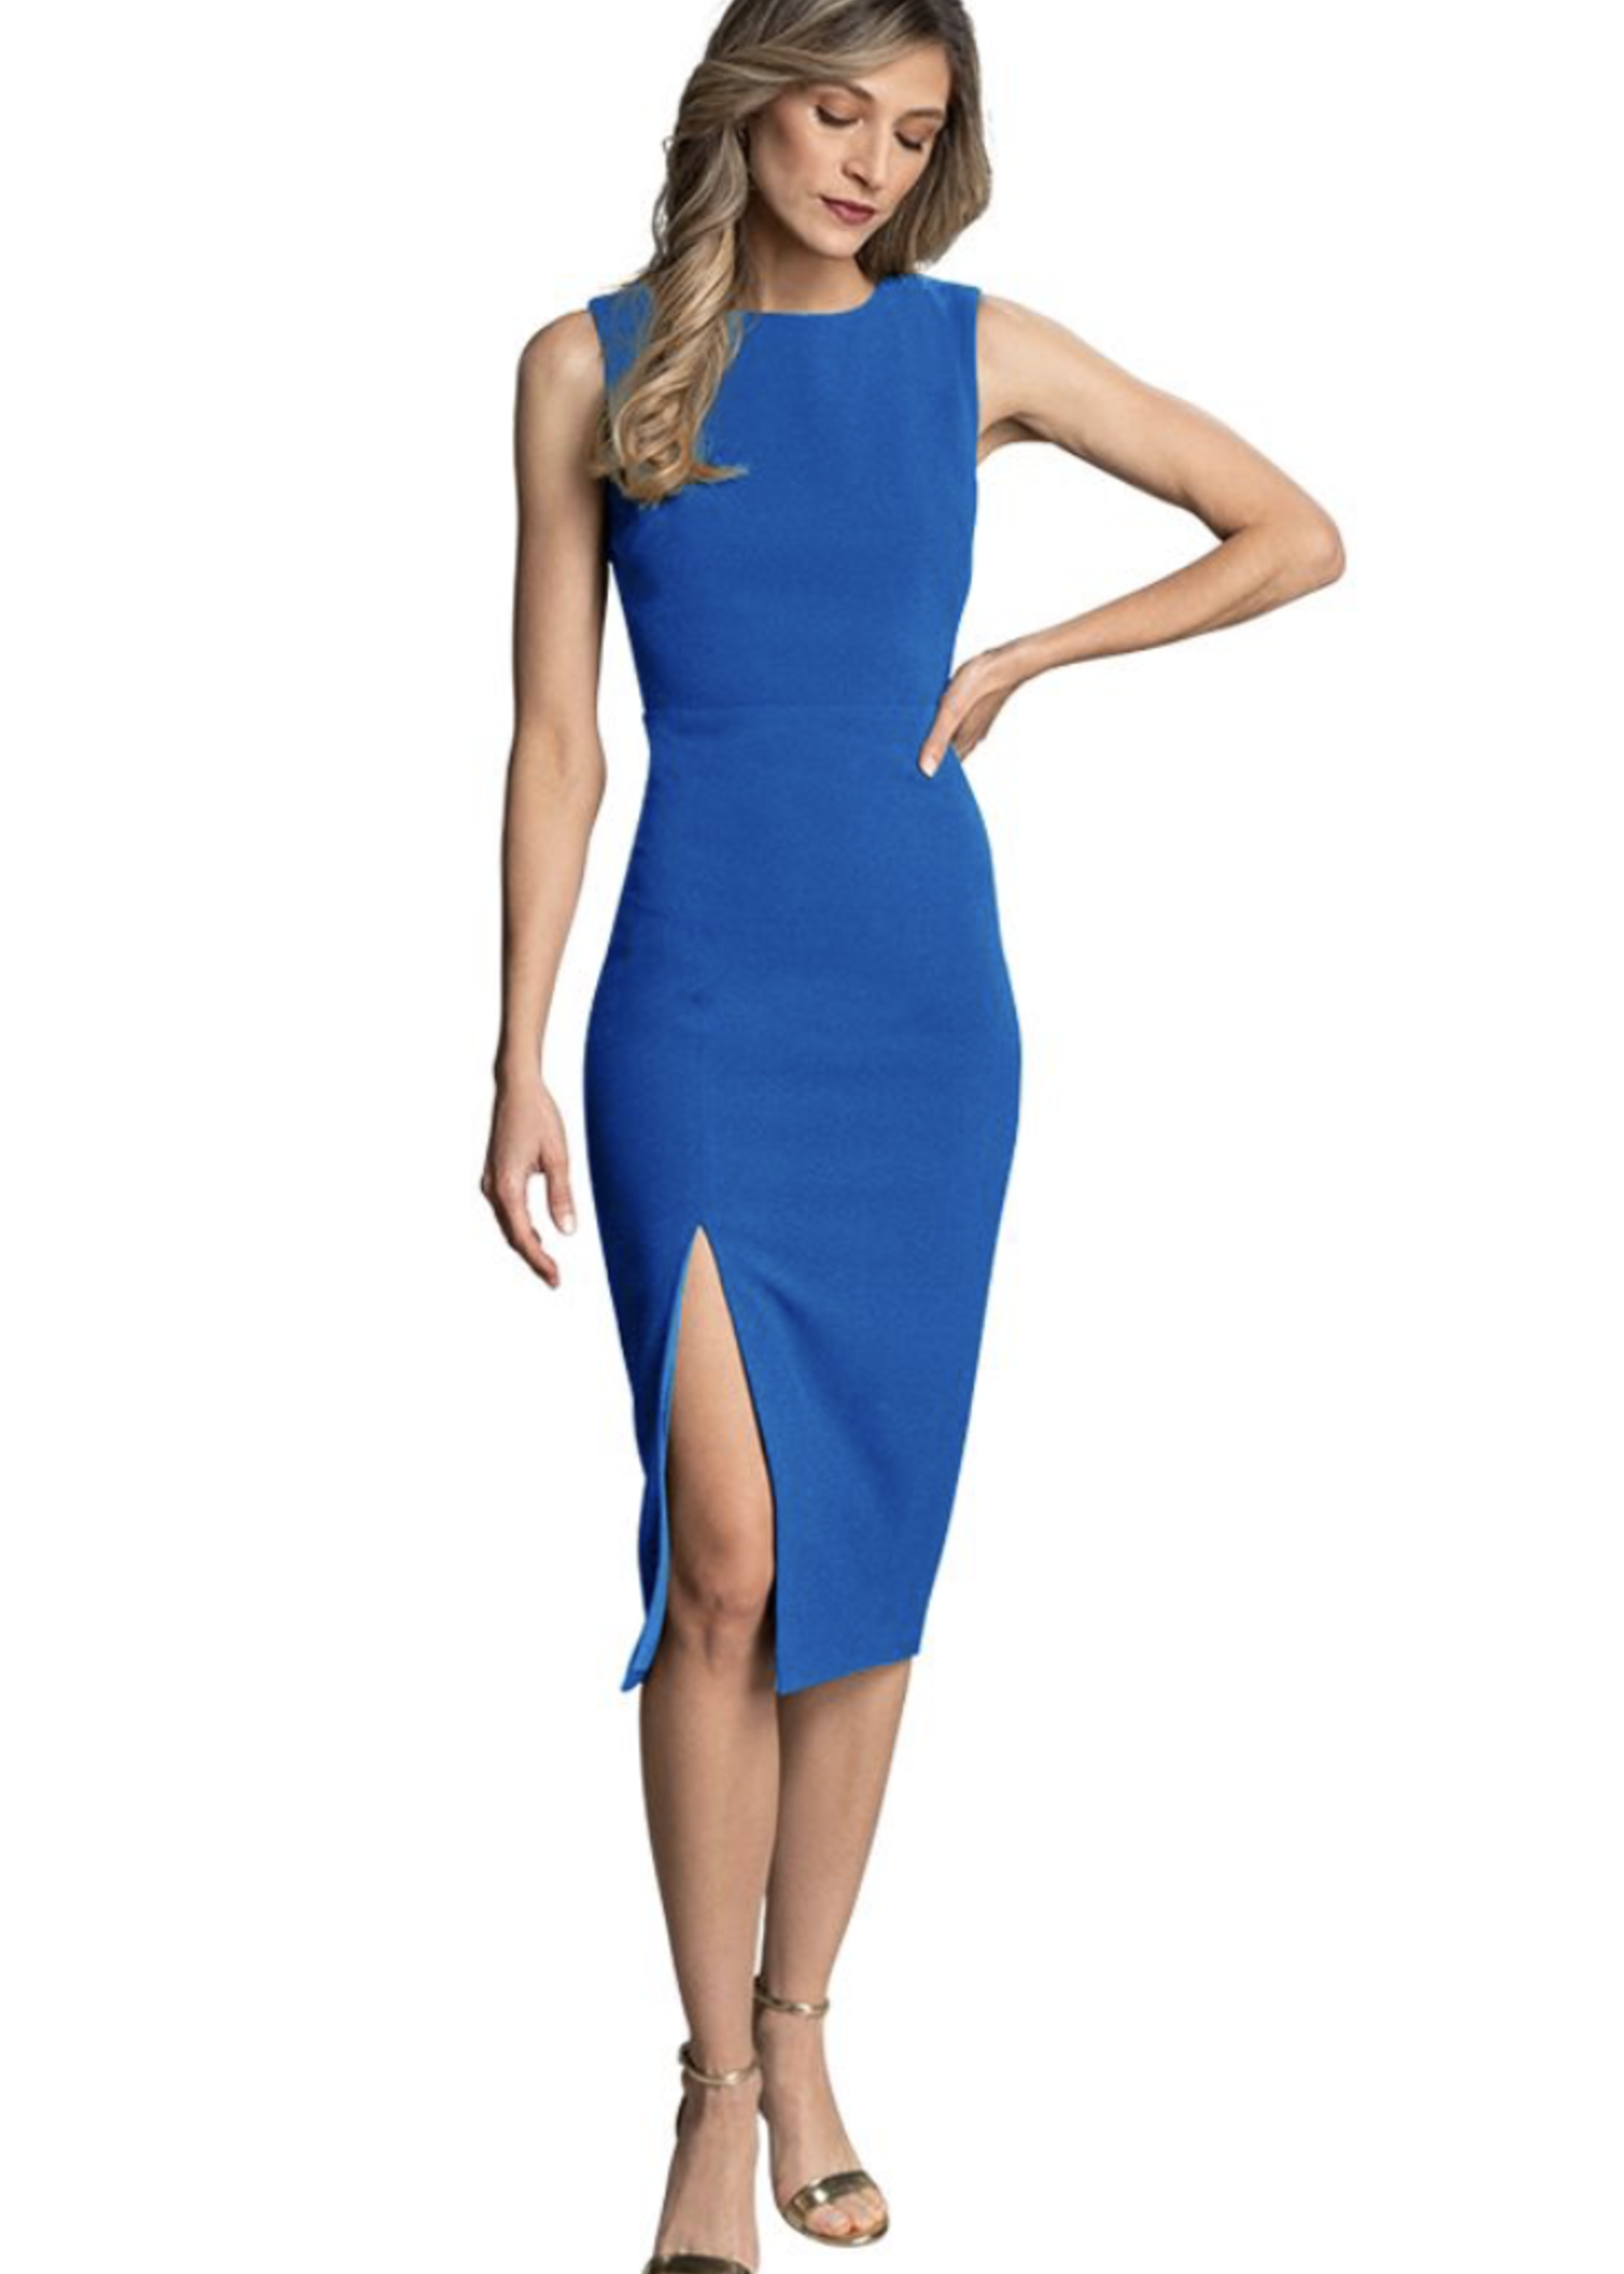 Elitaire Boutique The Mae Dress in Electric Blue